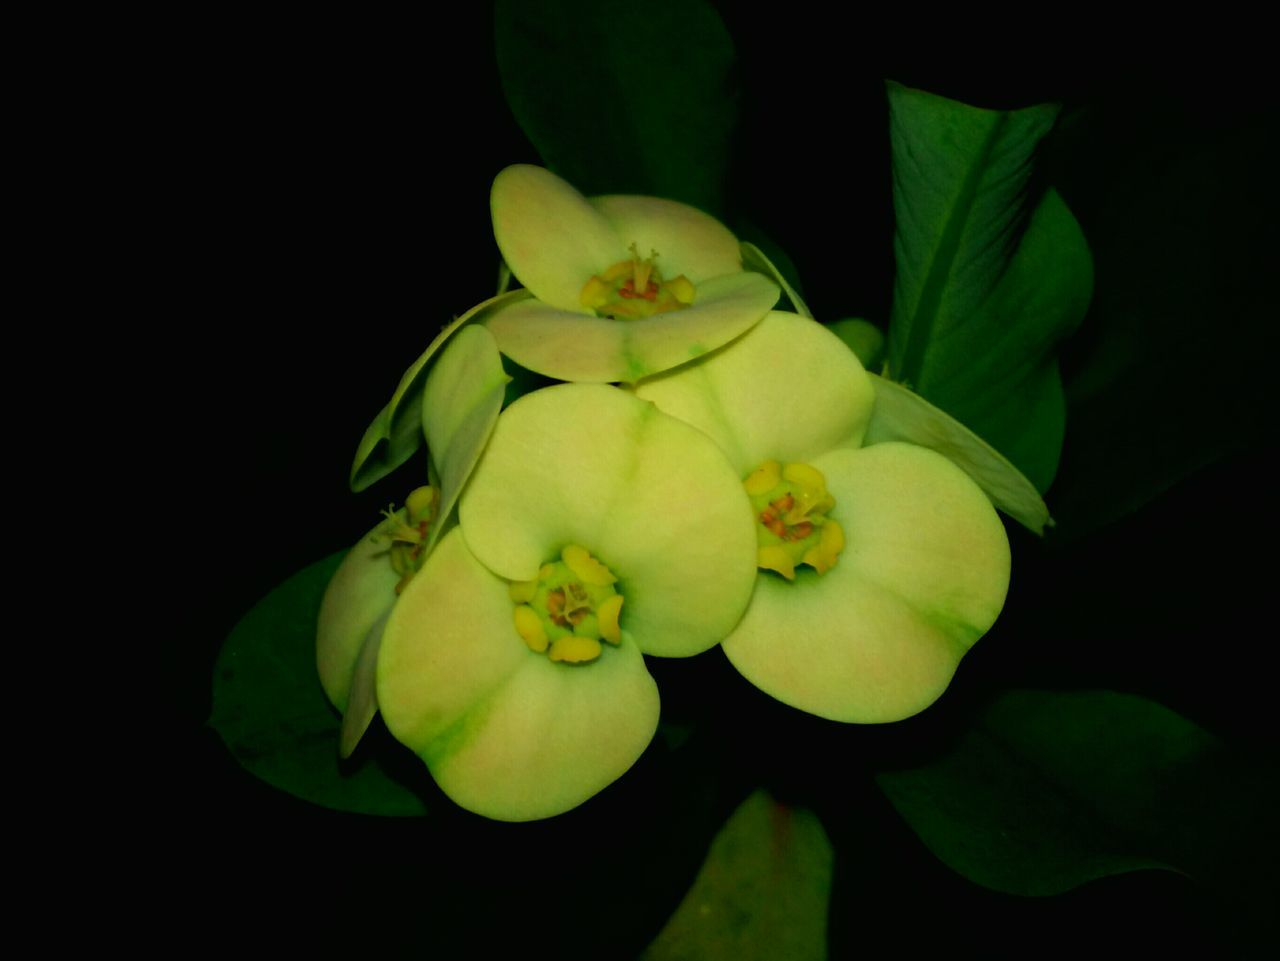 flower, petal, beauty in nature, nature, freshness, growth, fragility, black background, green color, plant, no people, close-up, leaf, yellow, flower head, studio shot, outdoors, day